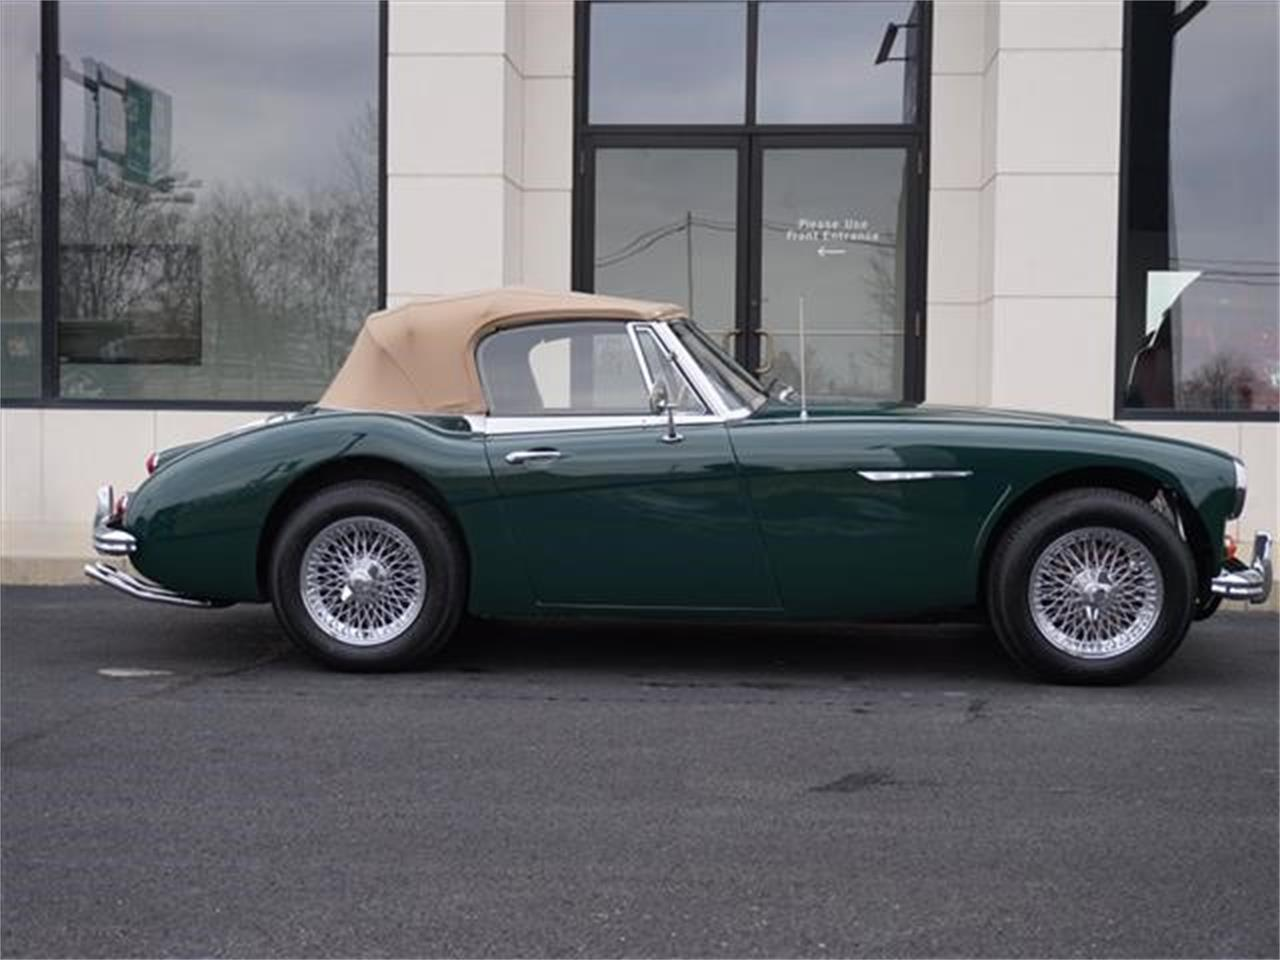 Large Picture of '67 Austin-Healey 3000 Mark III Offered by Nelson Automotive, Ltd. - LRXT